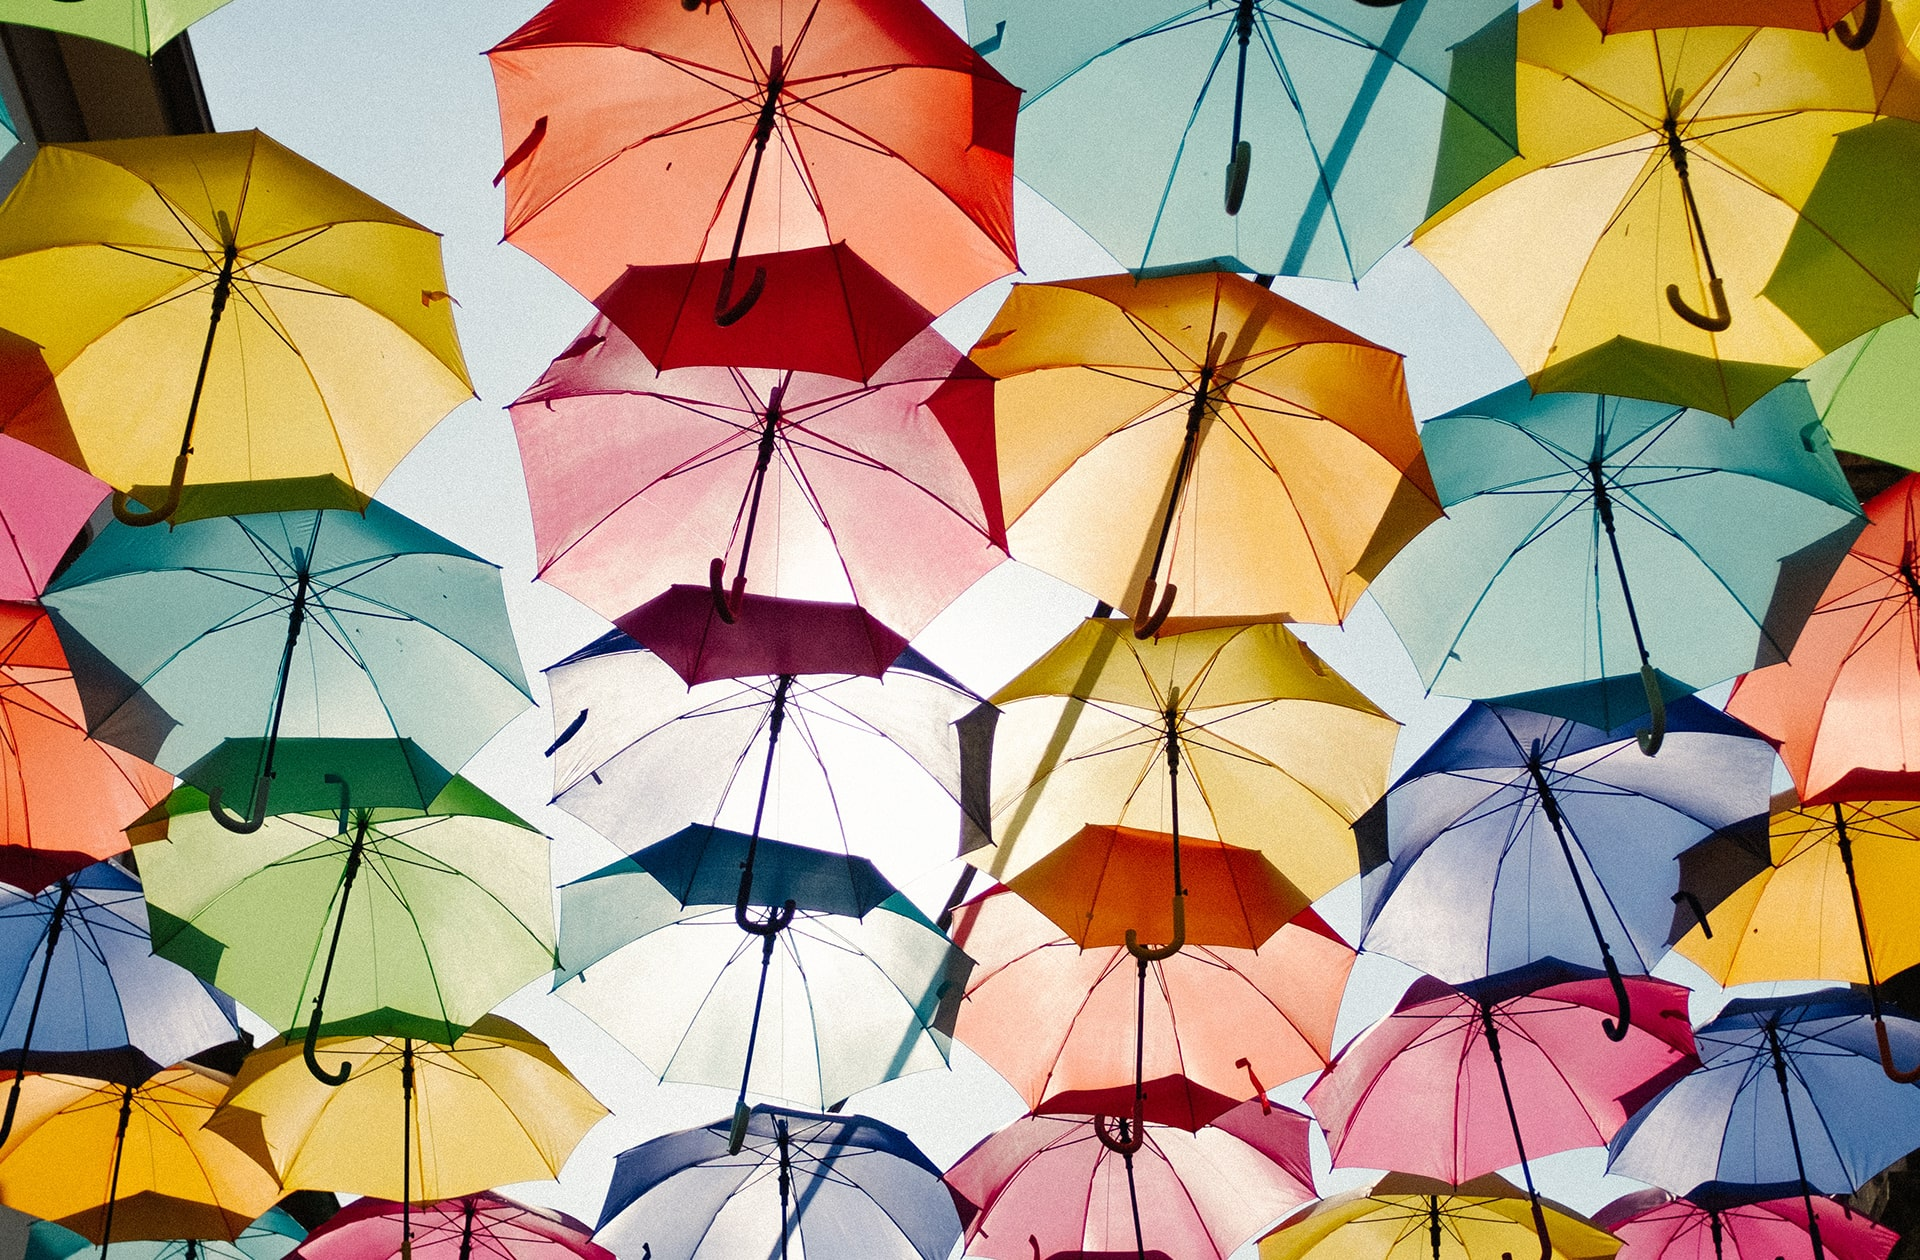 Protecting umbrellas in multiple colors